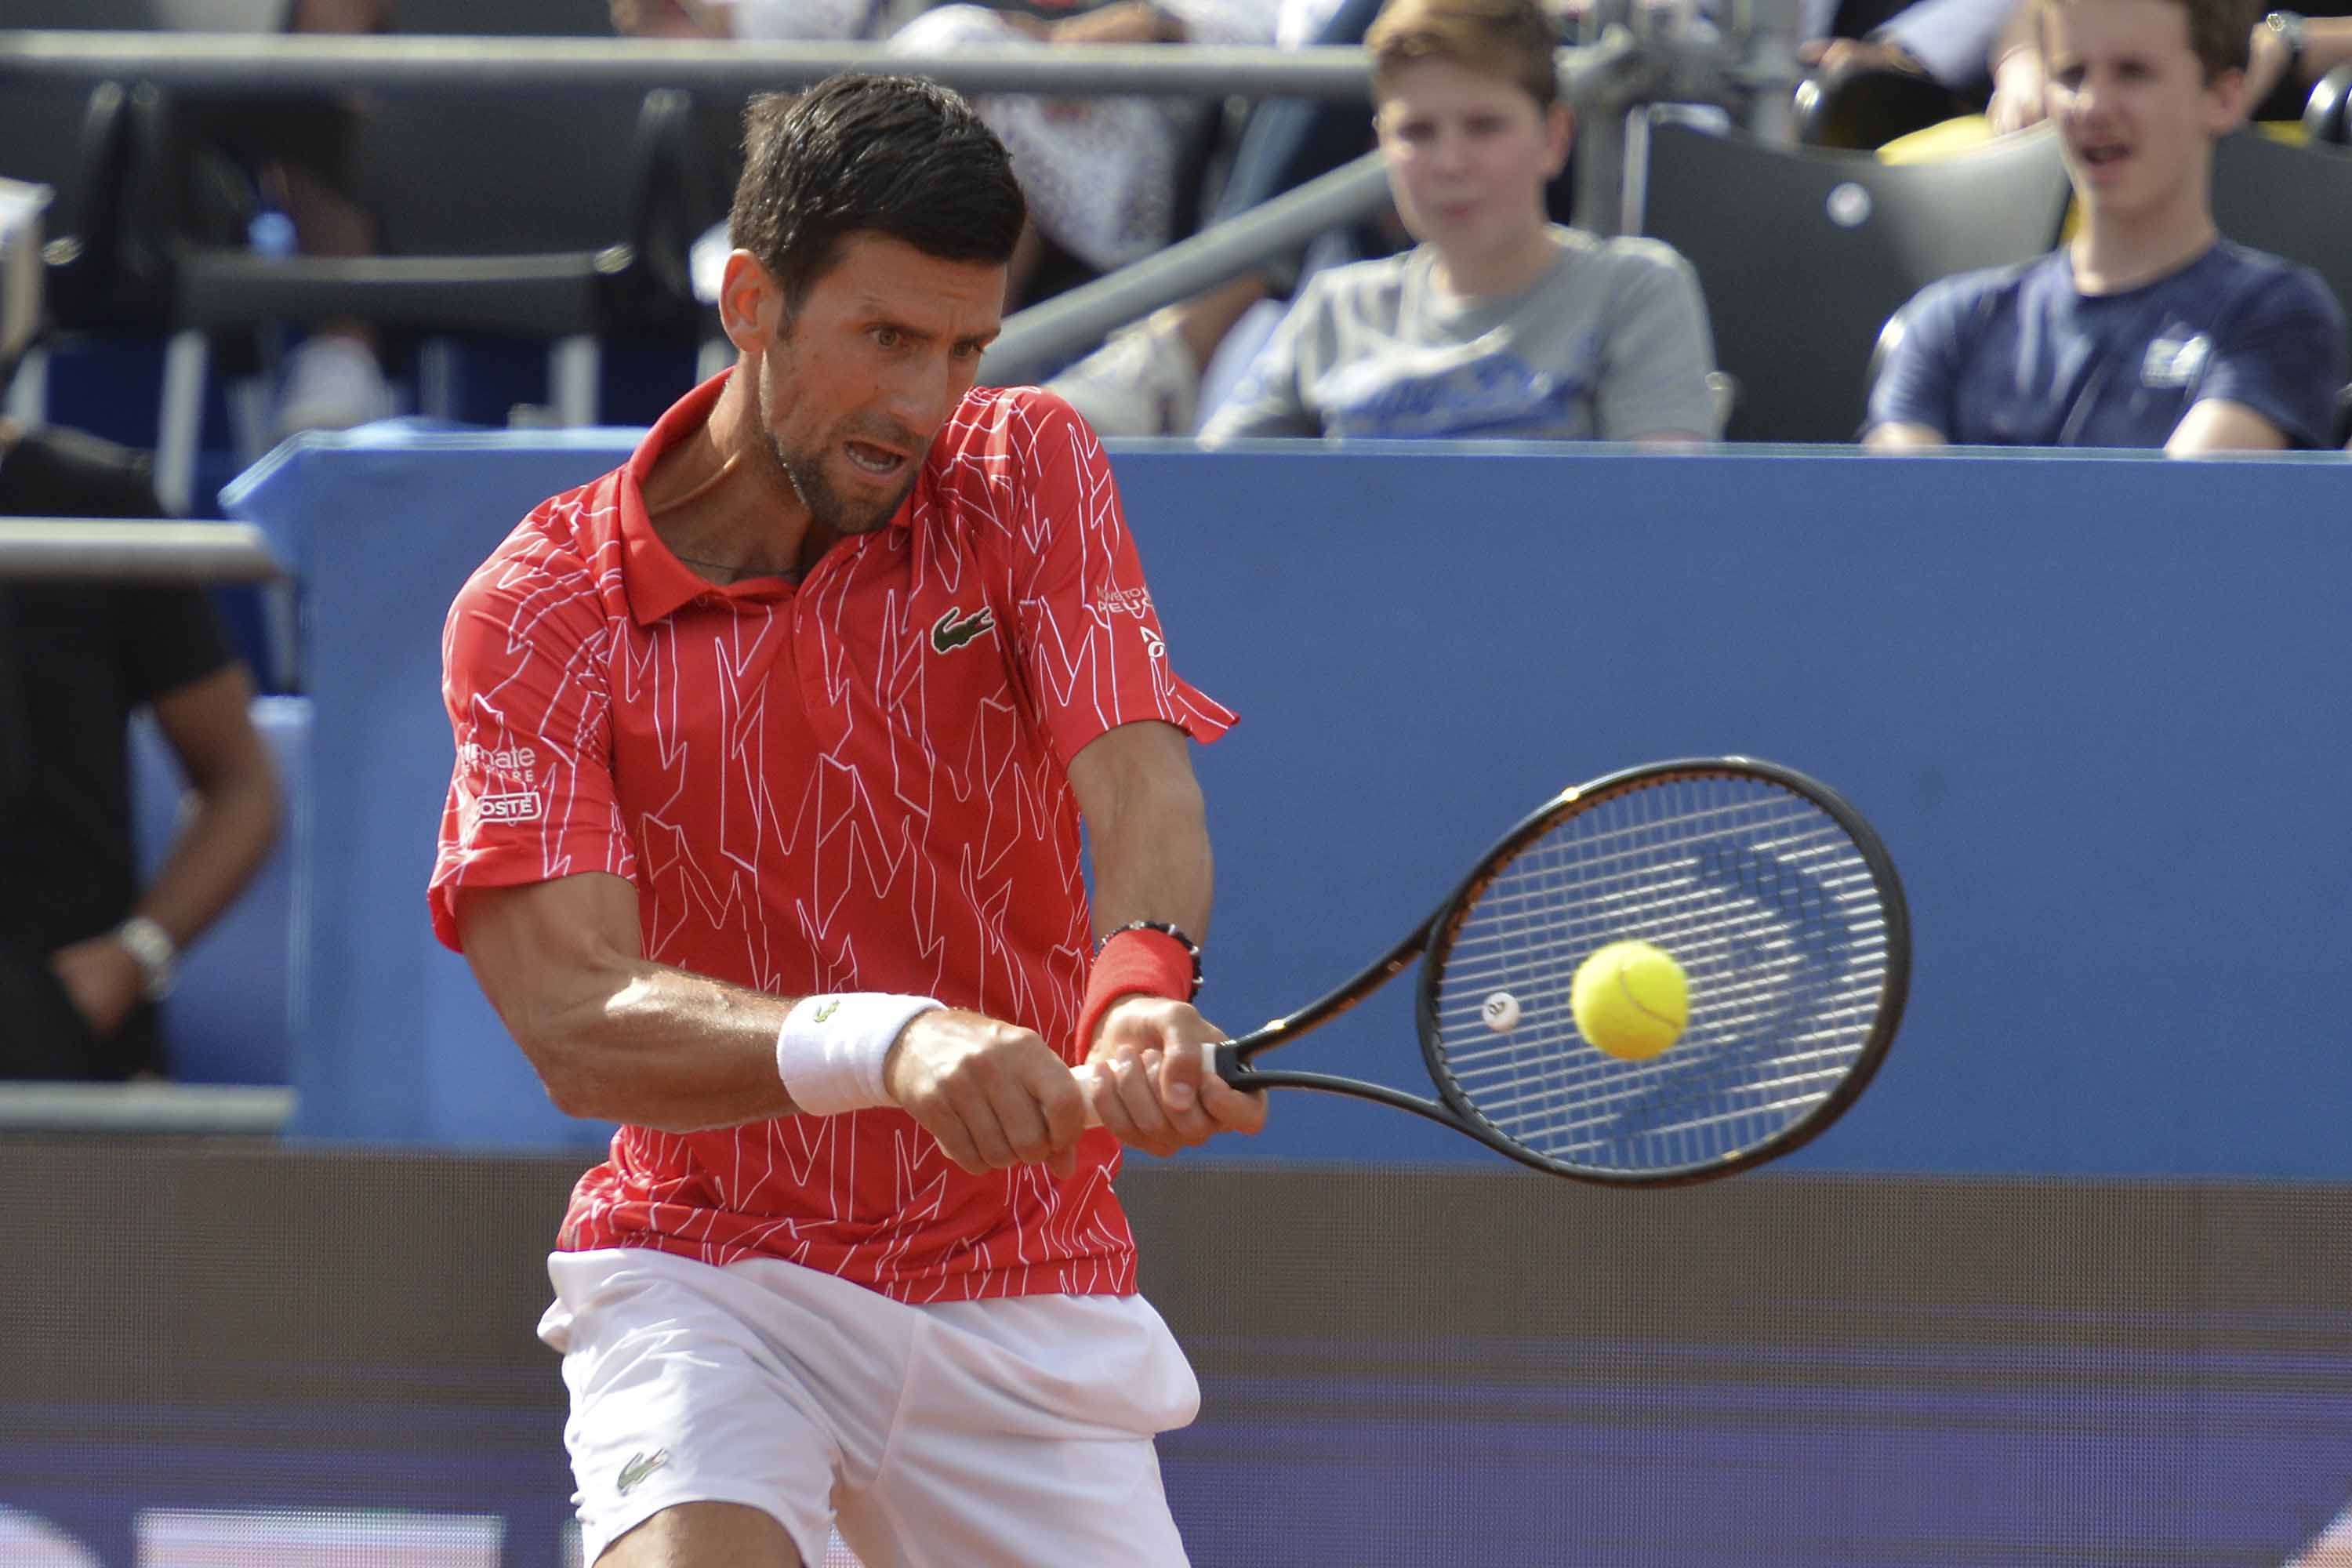 Novak Djokovic returns the ball during an exhibition tournament in Zadar, Croatia, on Sunday, June 21.